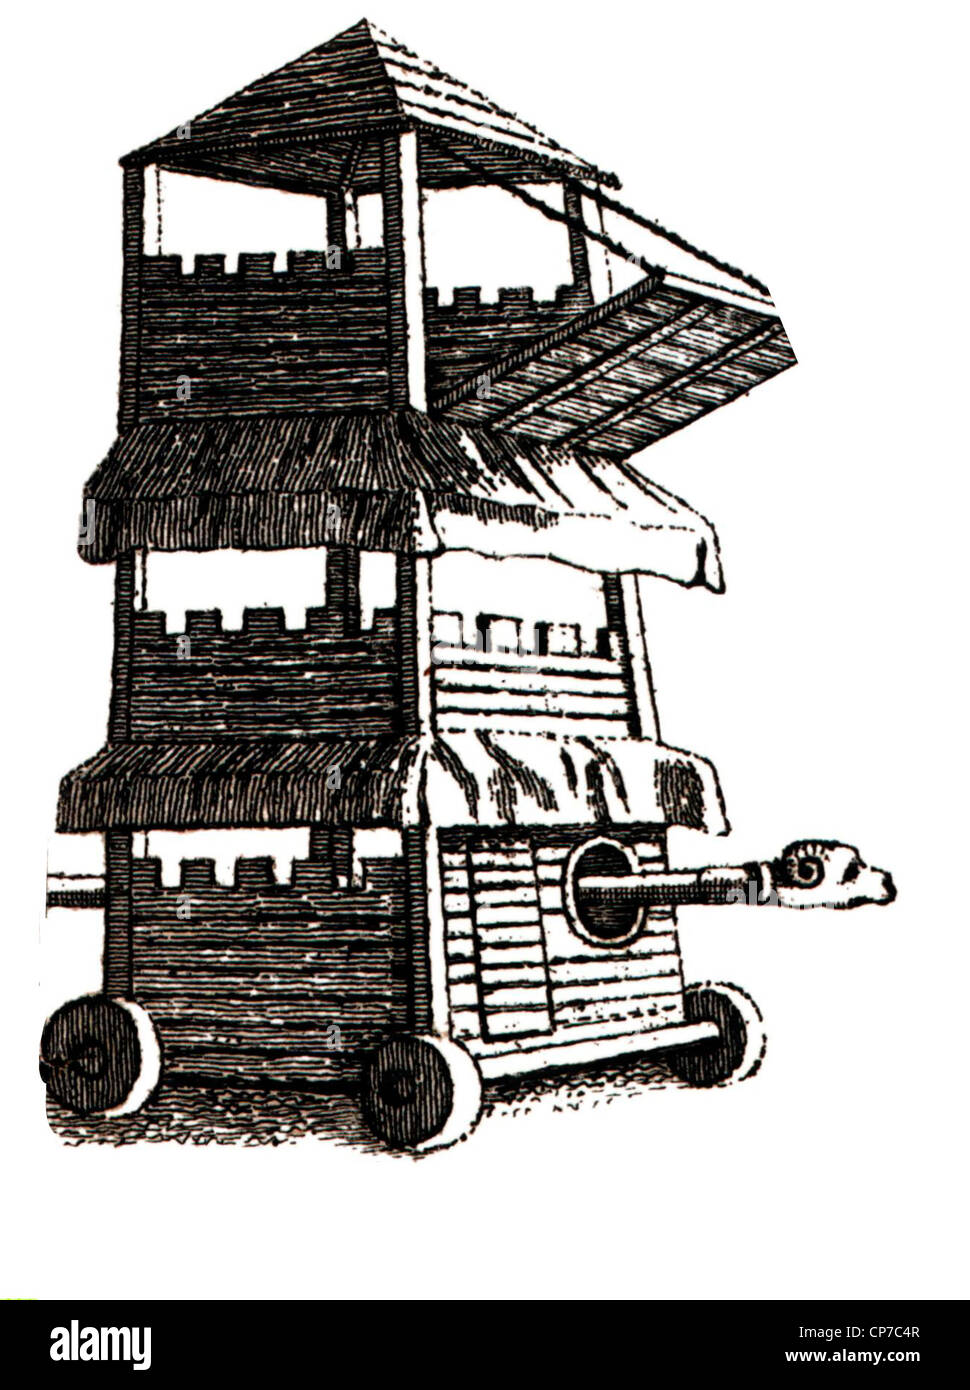 Medieval siege tower or engine with bridge and battering Ram. - Stock Image